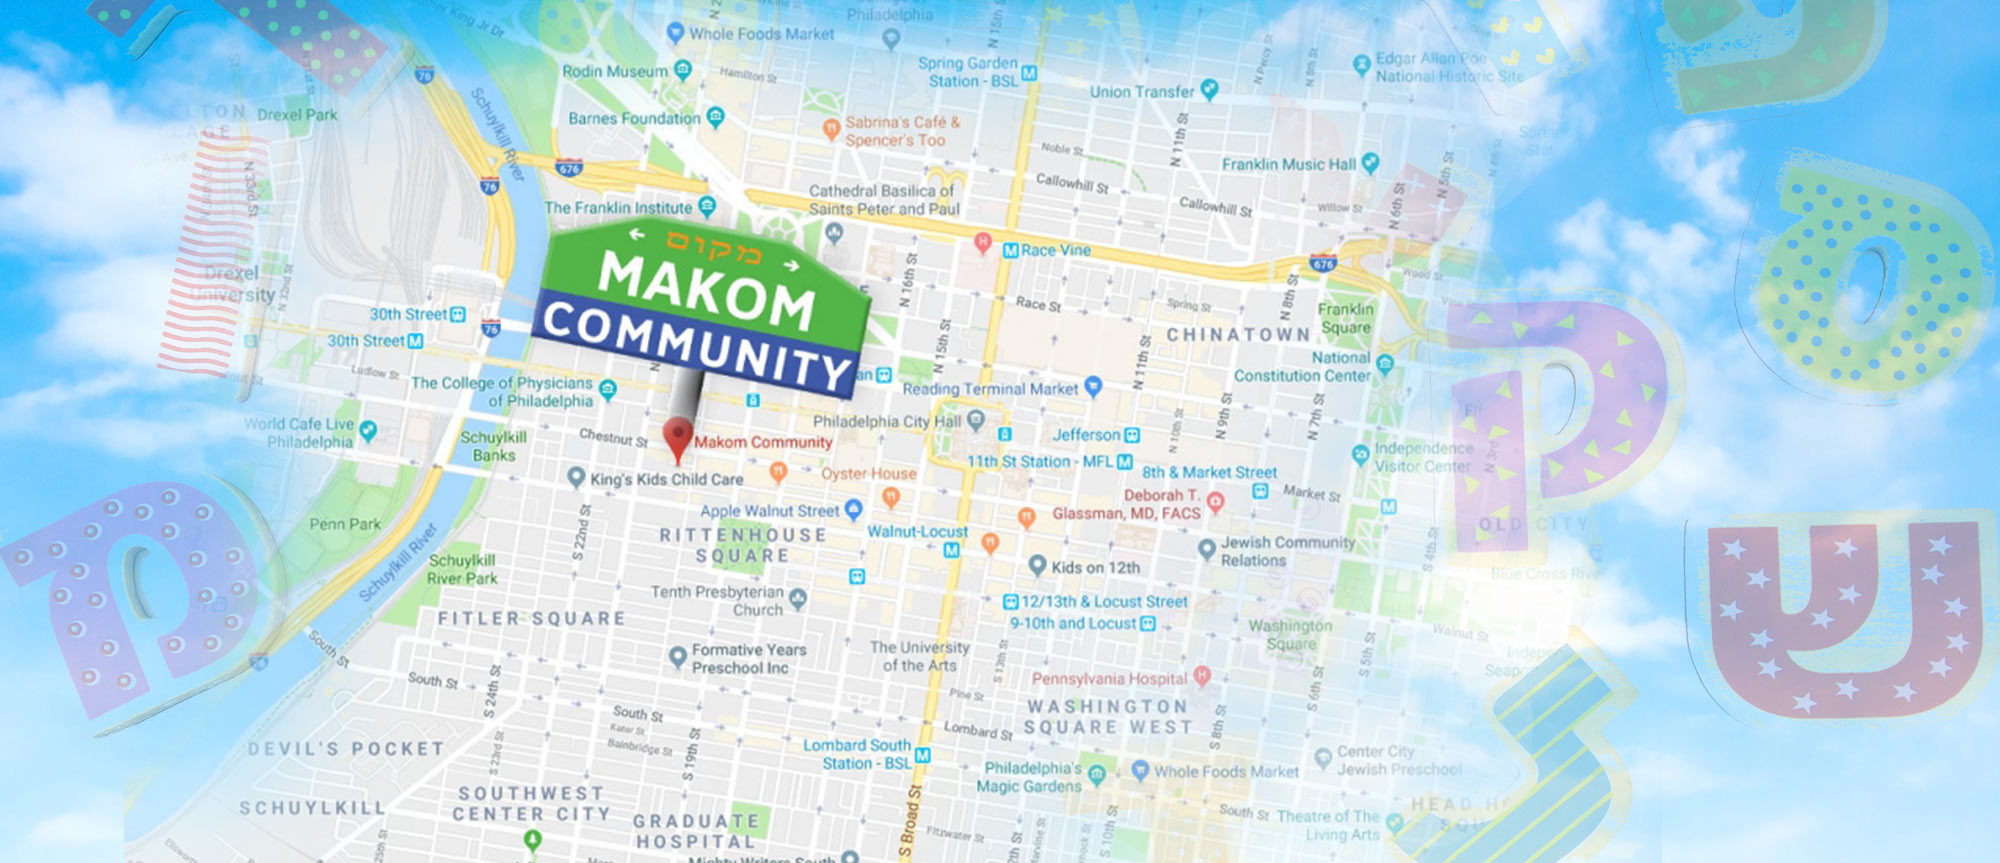 Makom Community Location: Center City Philadelphia